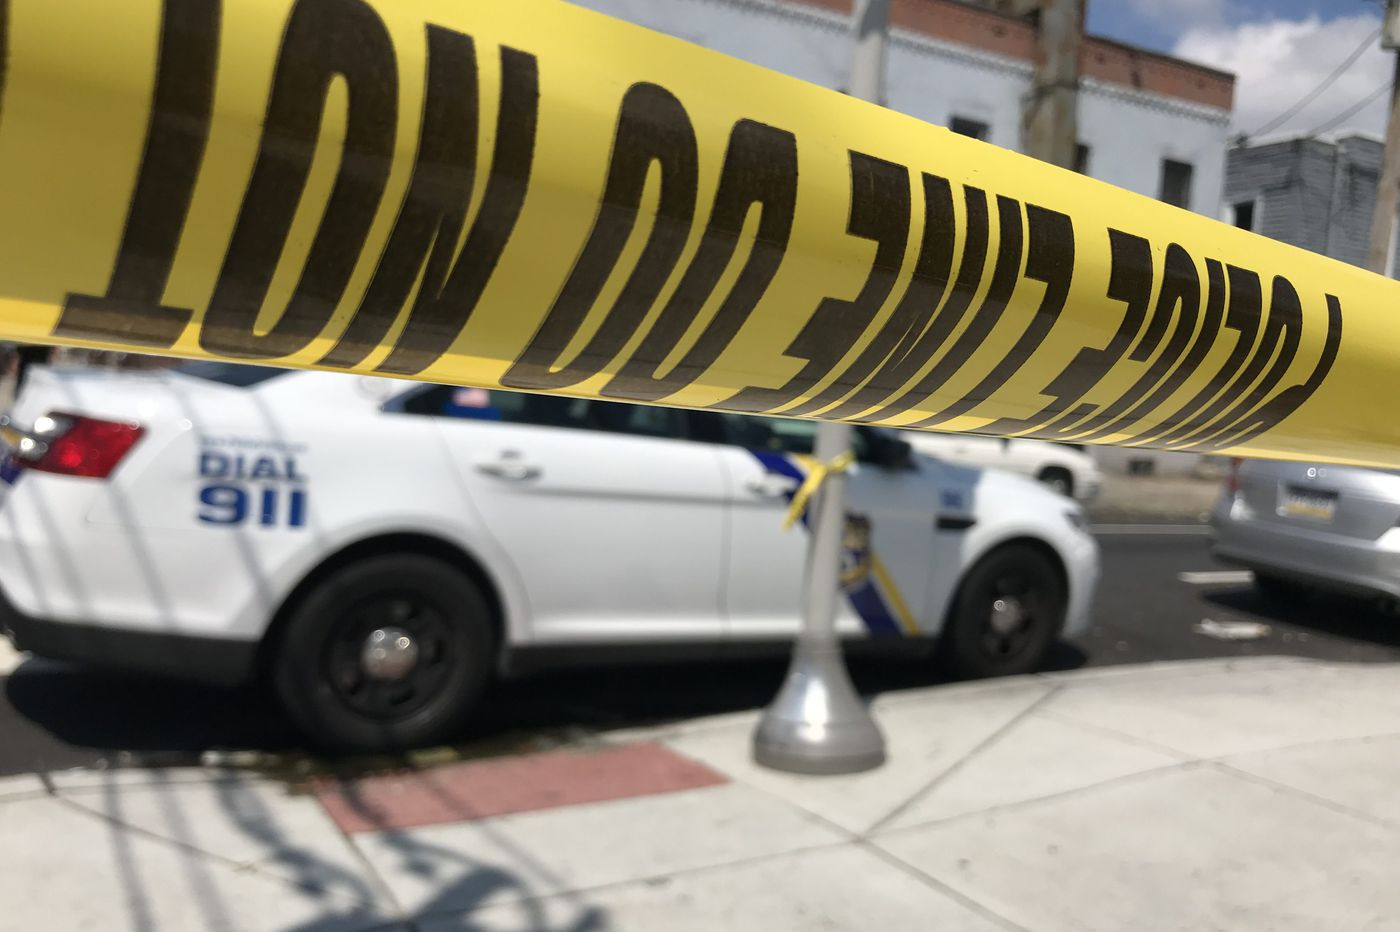 West Philly 'hit-run victim' jumped out of car to flee shooting and was run over, police say